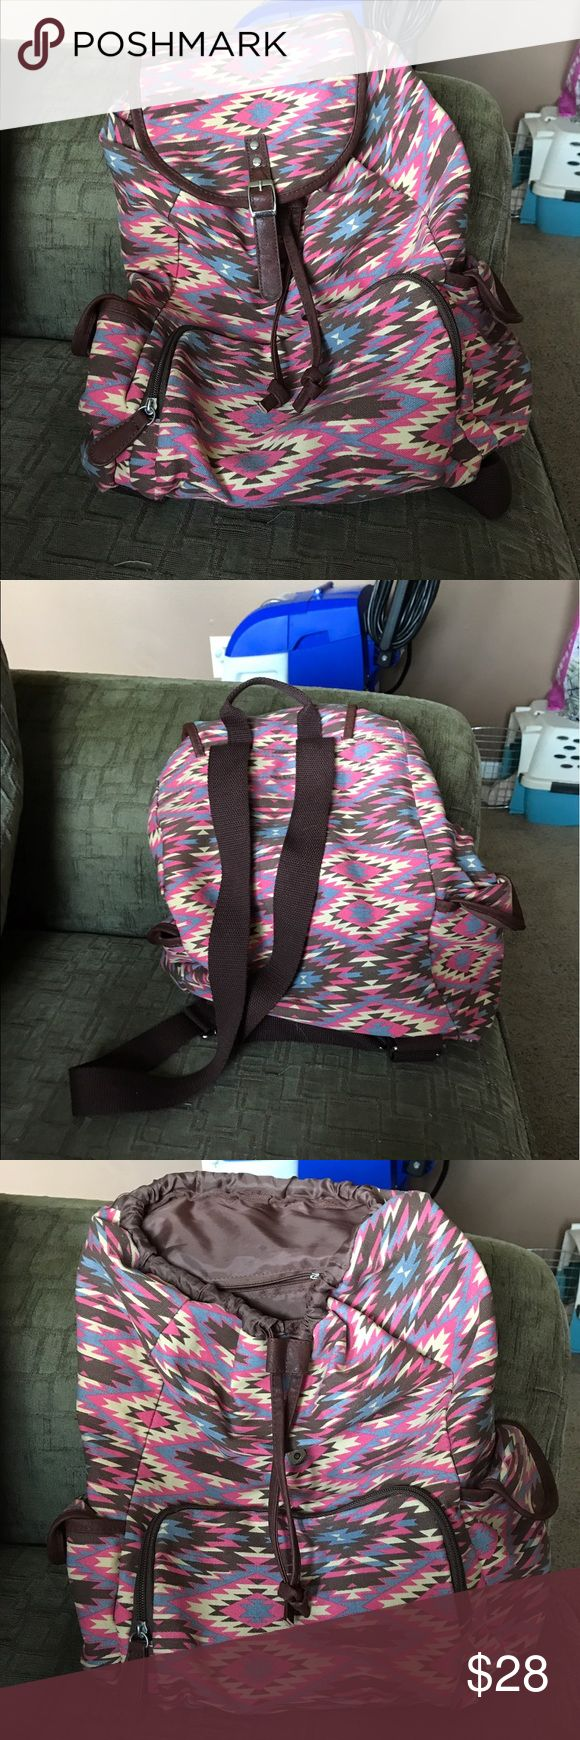 Aztec backpack Very quite and can be used for anything. Used twice. Clean inside bag. Got from Target Bags Backpacks